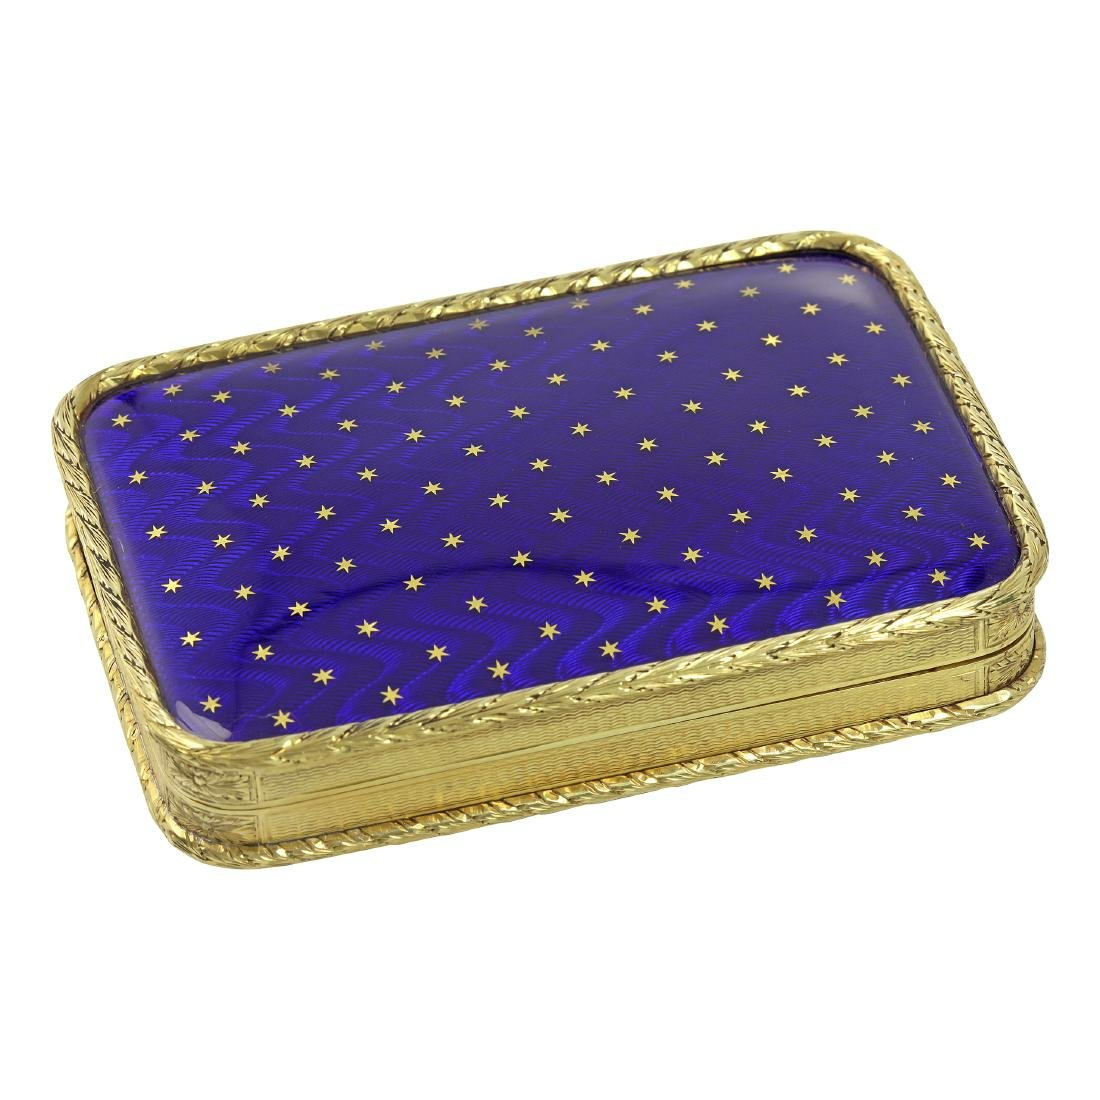 AN ANTIQUE ENAMEL GOLD BOX in high carat yellow gold,